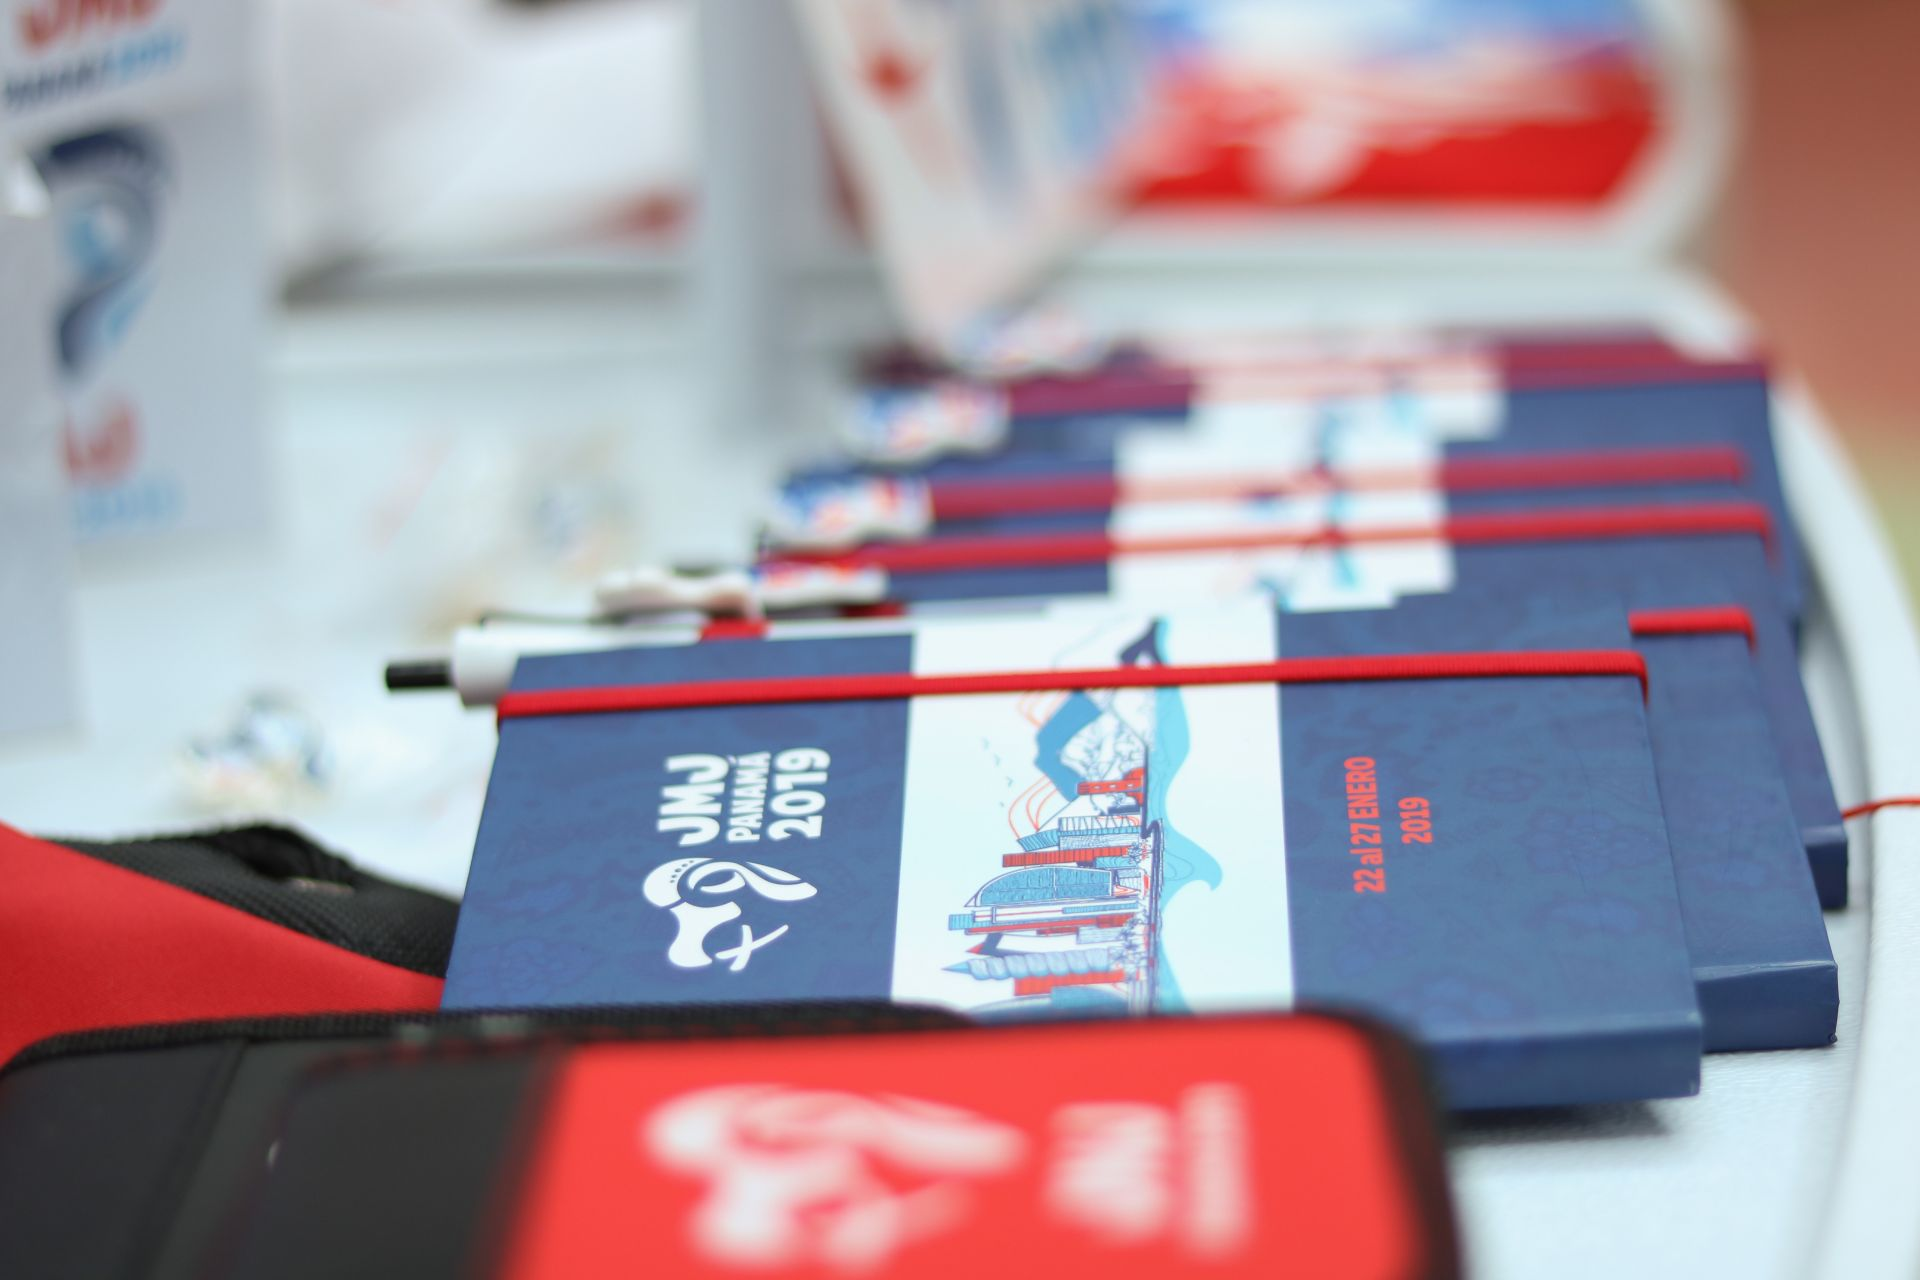 jmj, city, working day, panama, youth, book, red, blue, world, 19, notebook, agenda